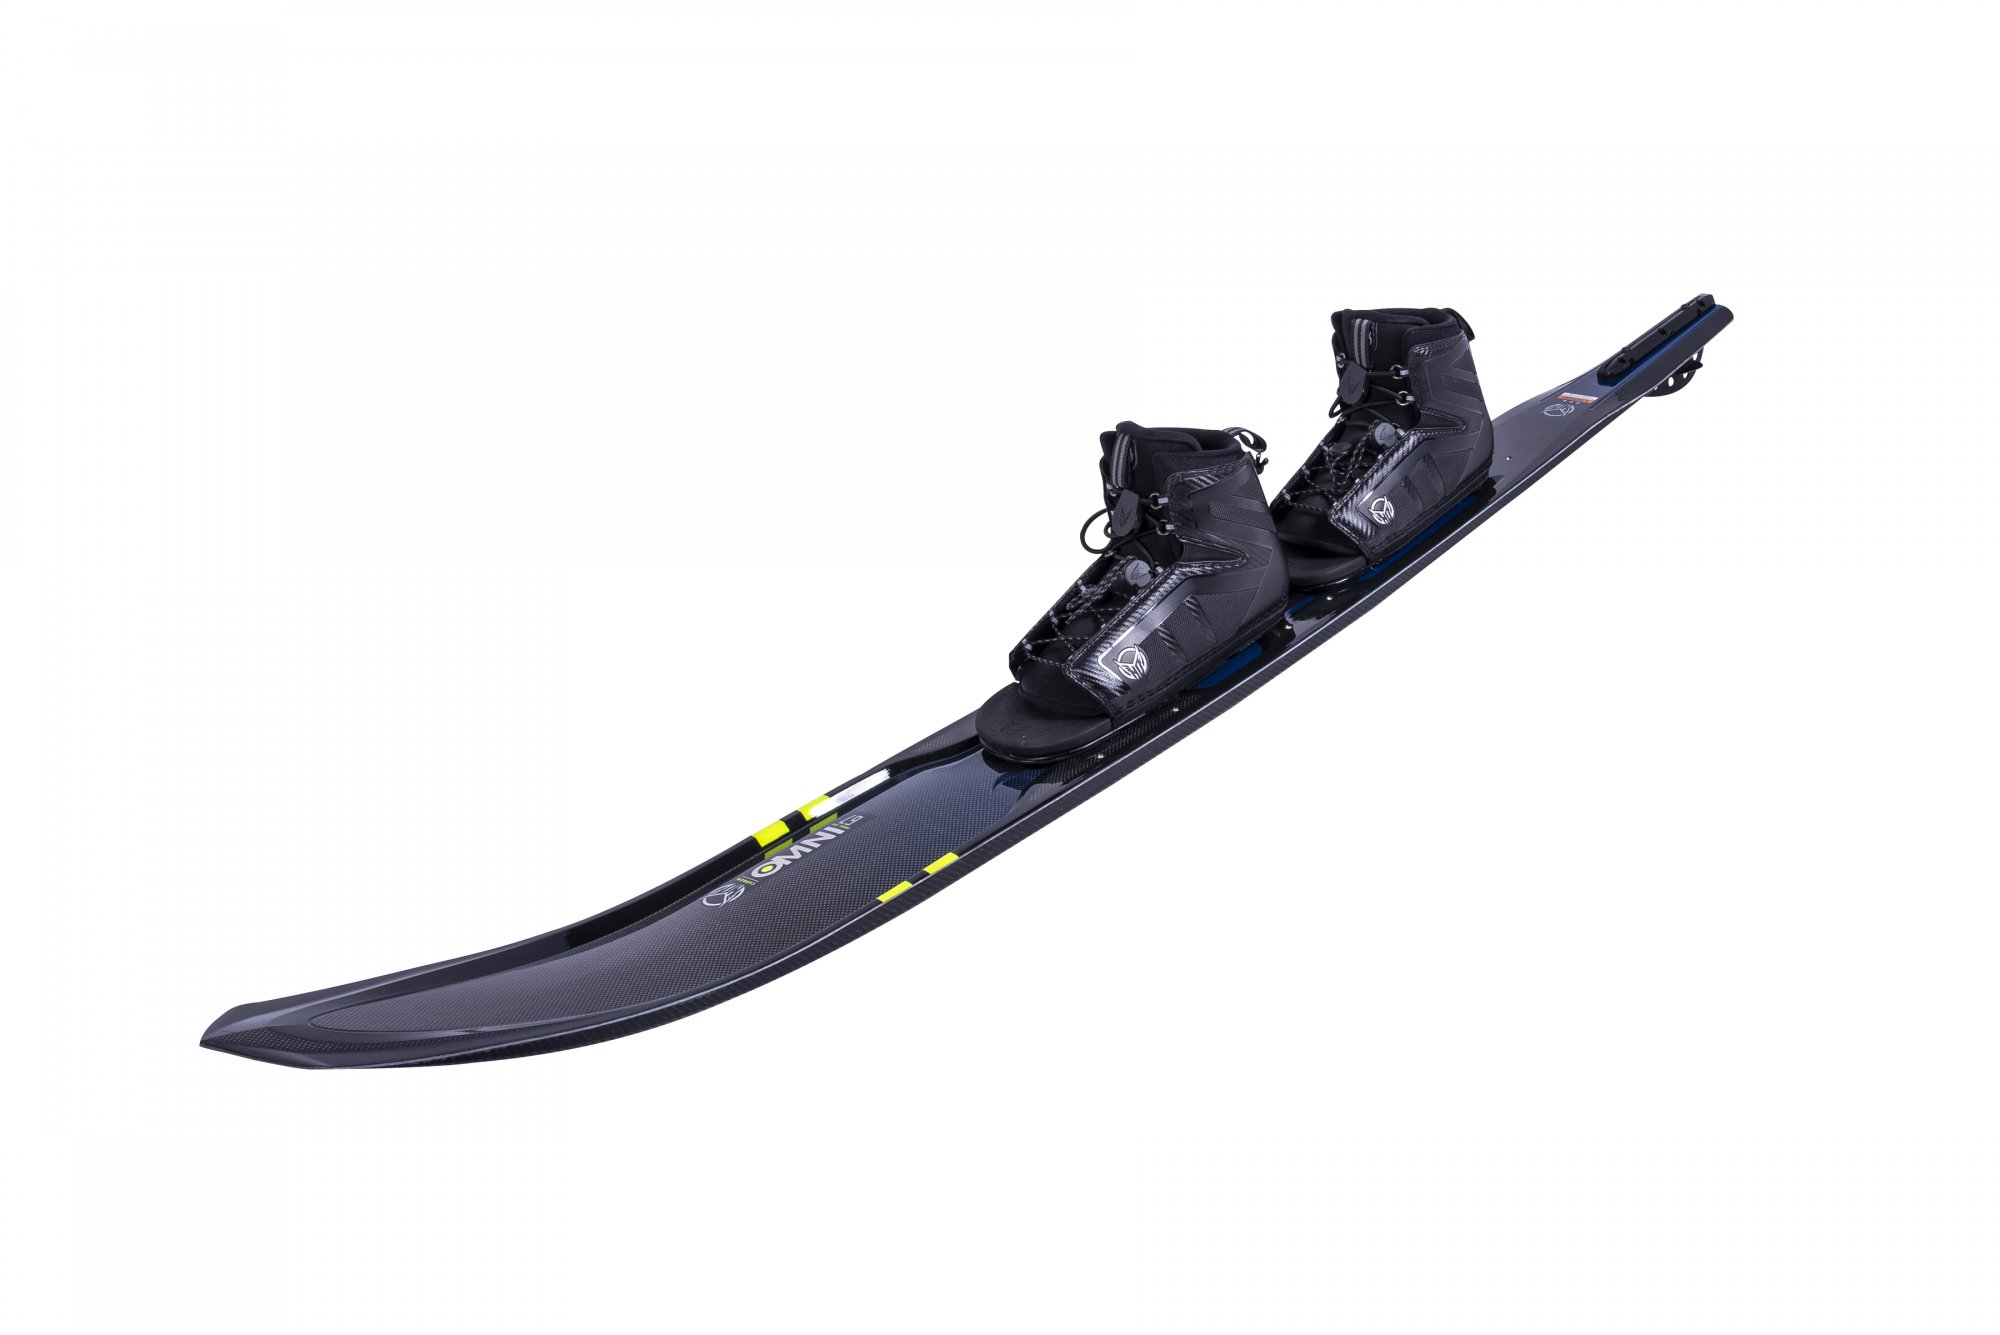 2021 HO Carbon Omni w/ Double Stance 130